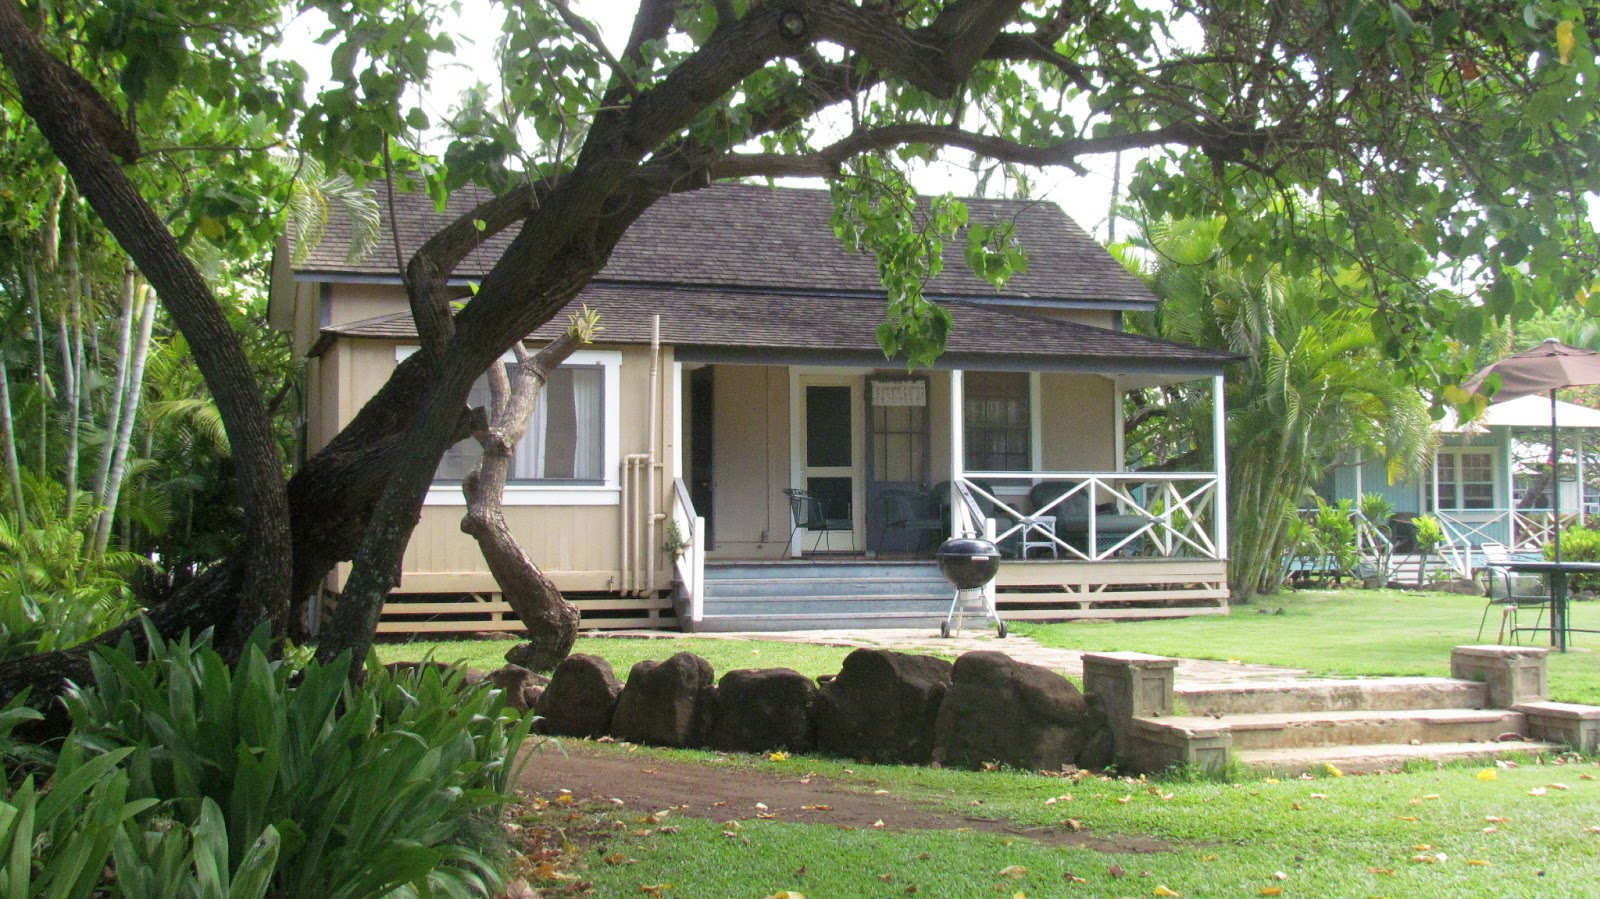 aunt gretchen joins the blogosphere kauai part 1 waimea plantation rh auntgretchensblog blogspot com kauai plantation cottages poipu kauai hawaii waimea plantation cottages